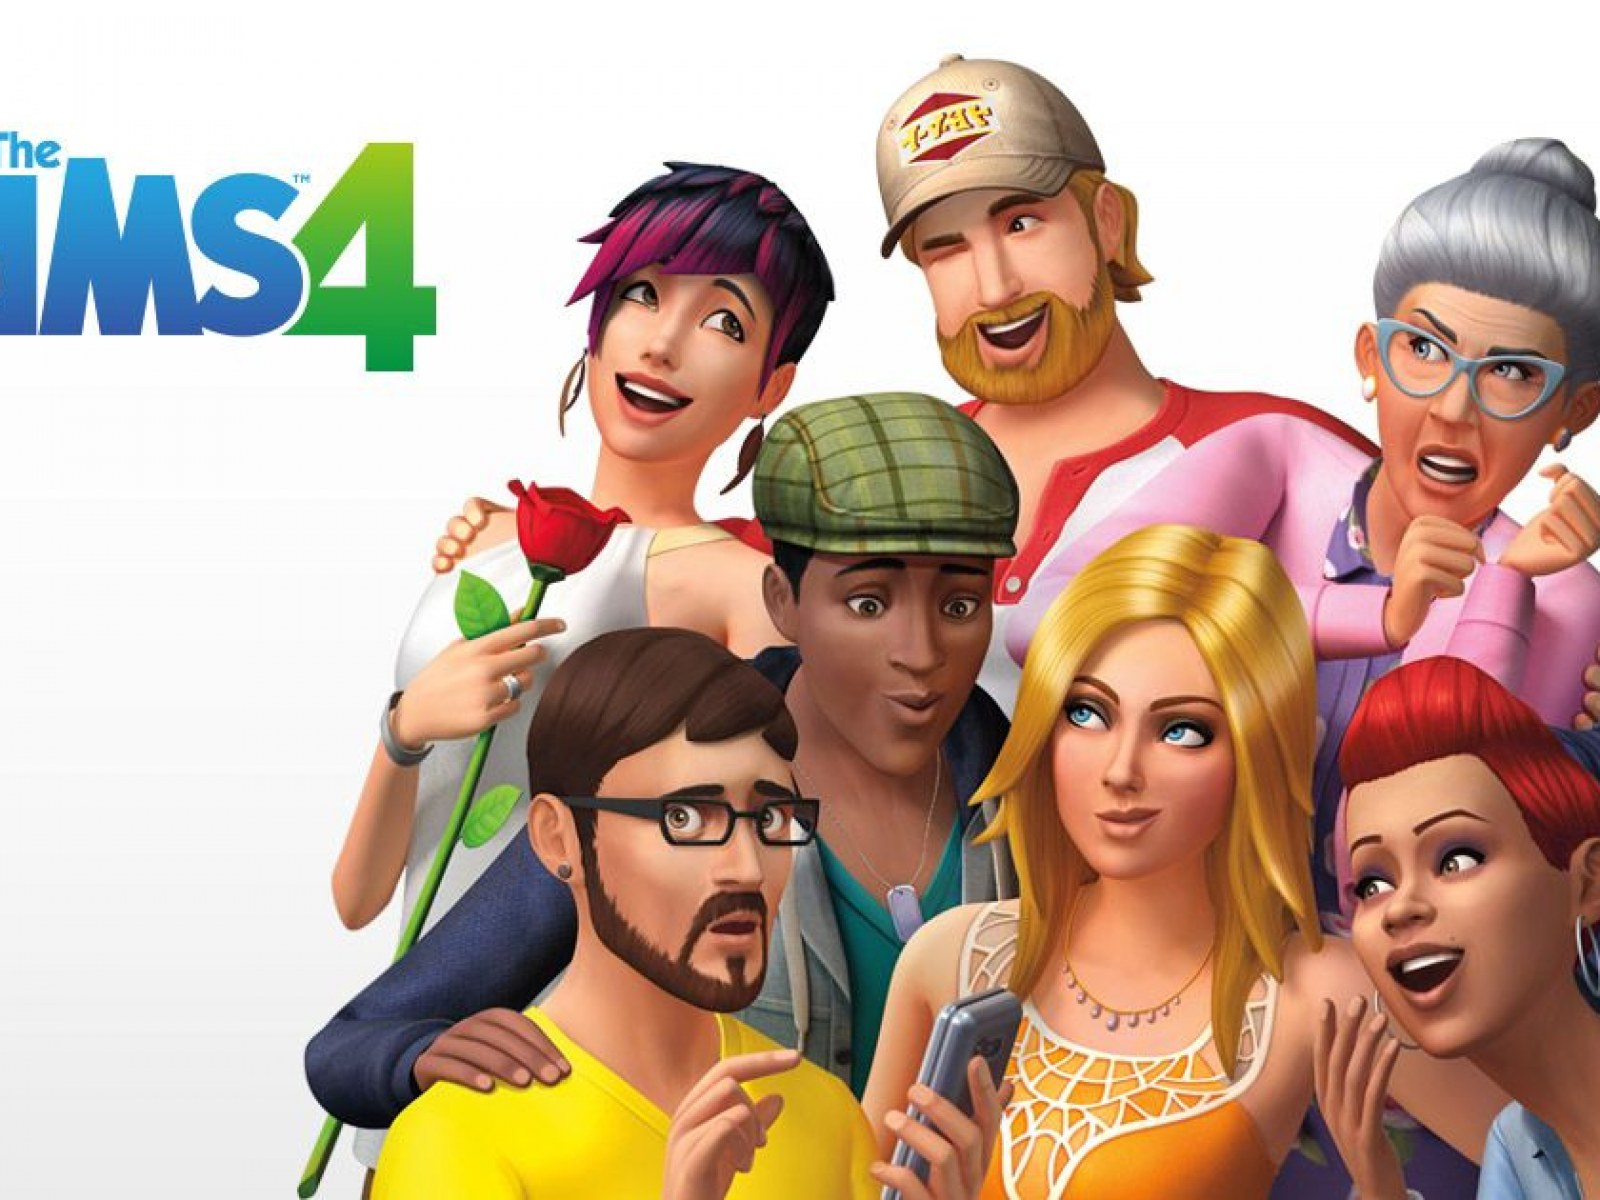 Sims 4' April 2019 Update: New Freelance Career, Clothing, Bug Fixes